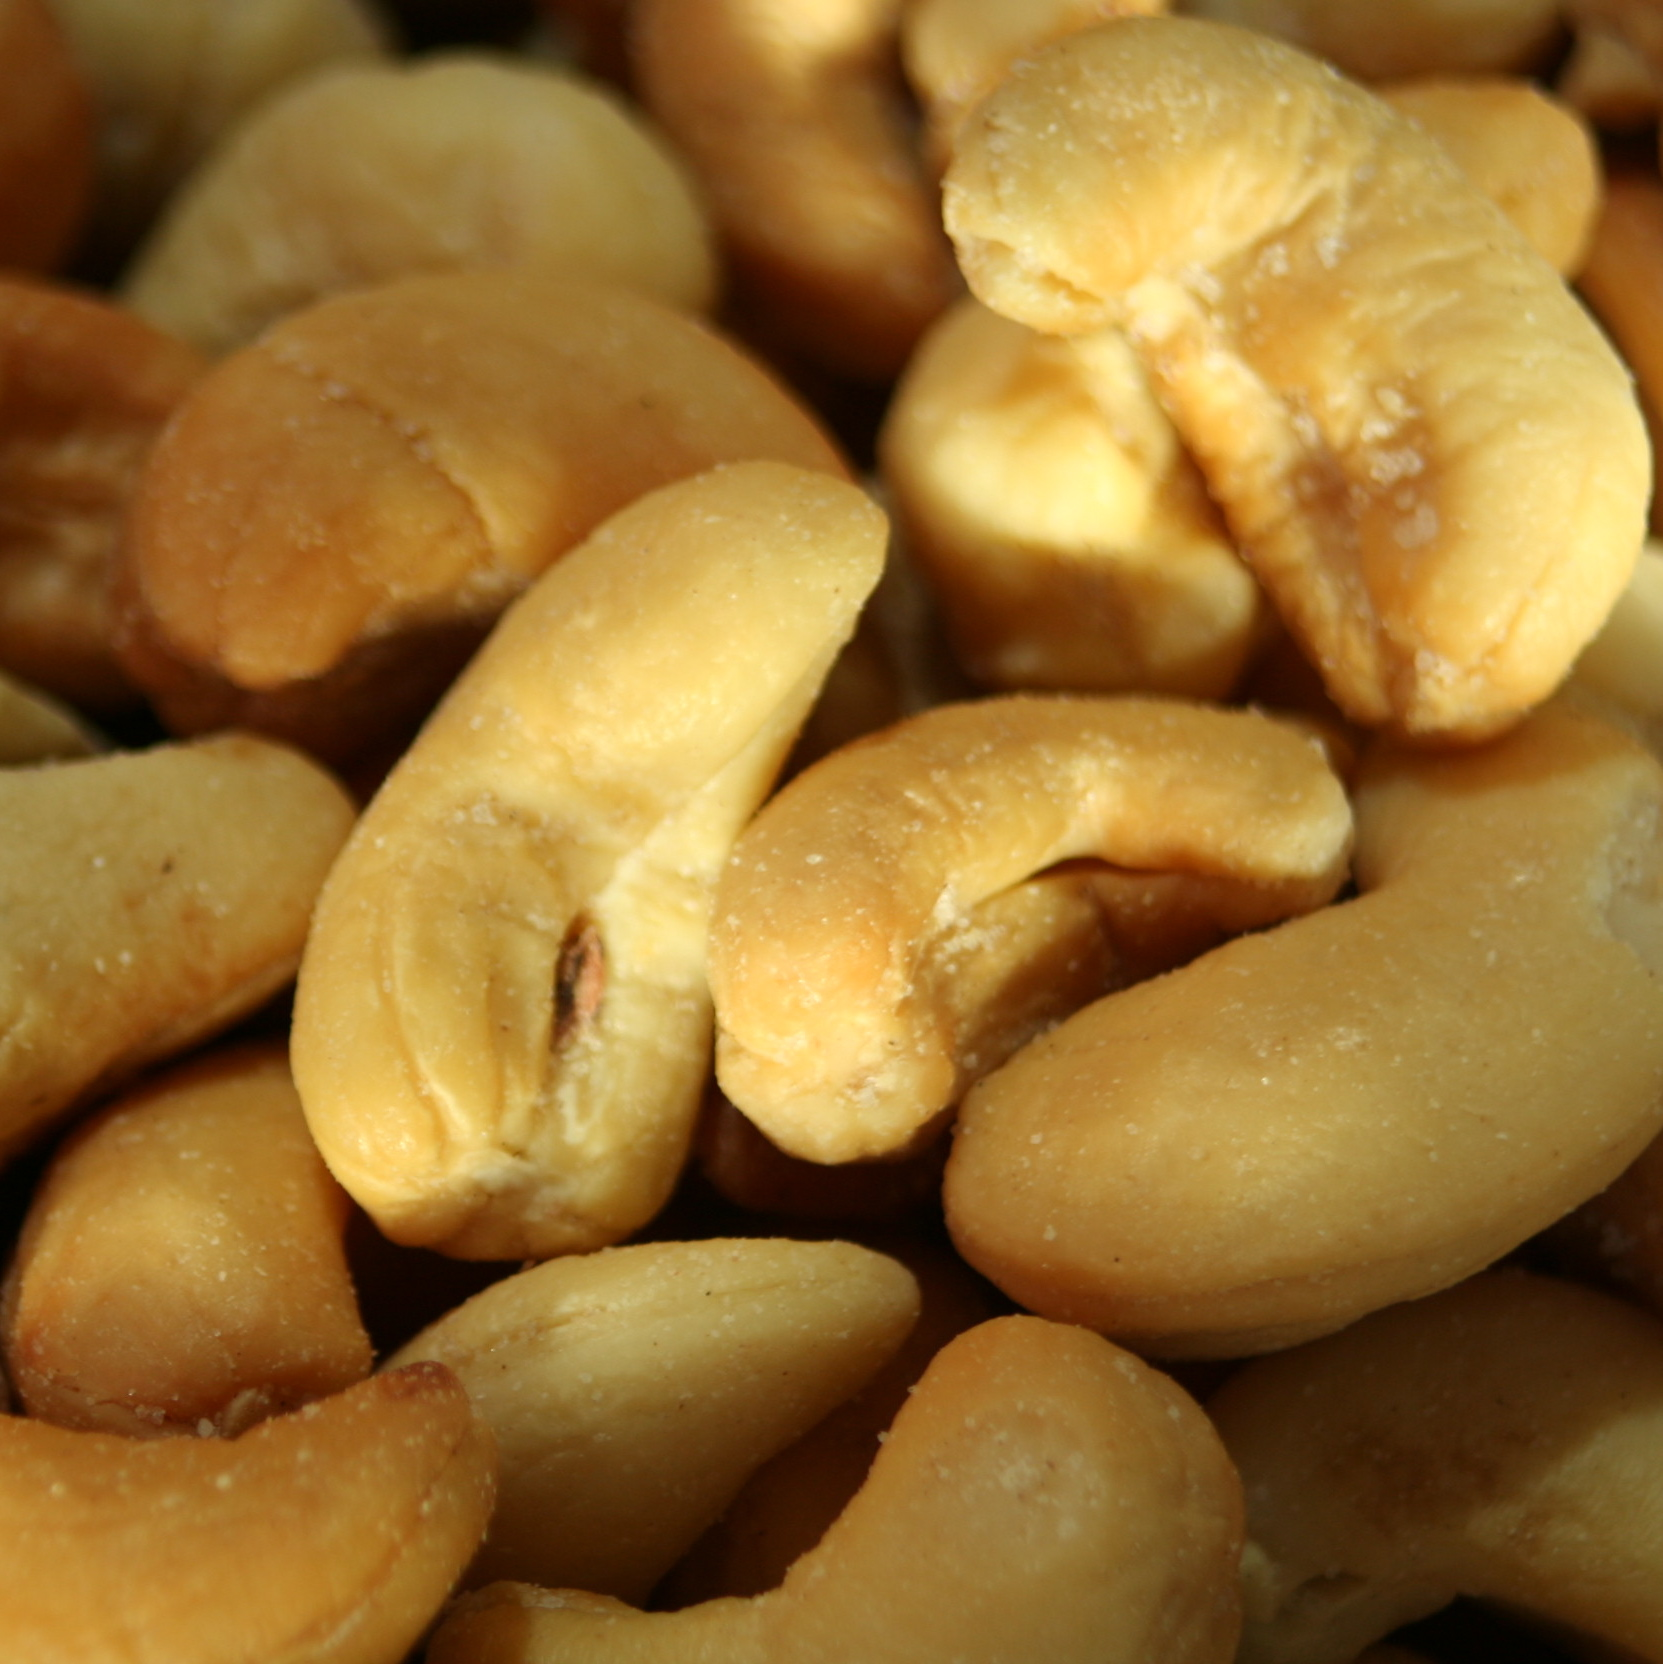 Roasted & Salted Cashew Nuts